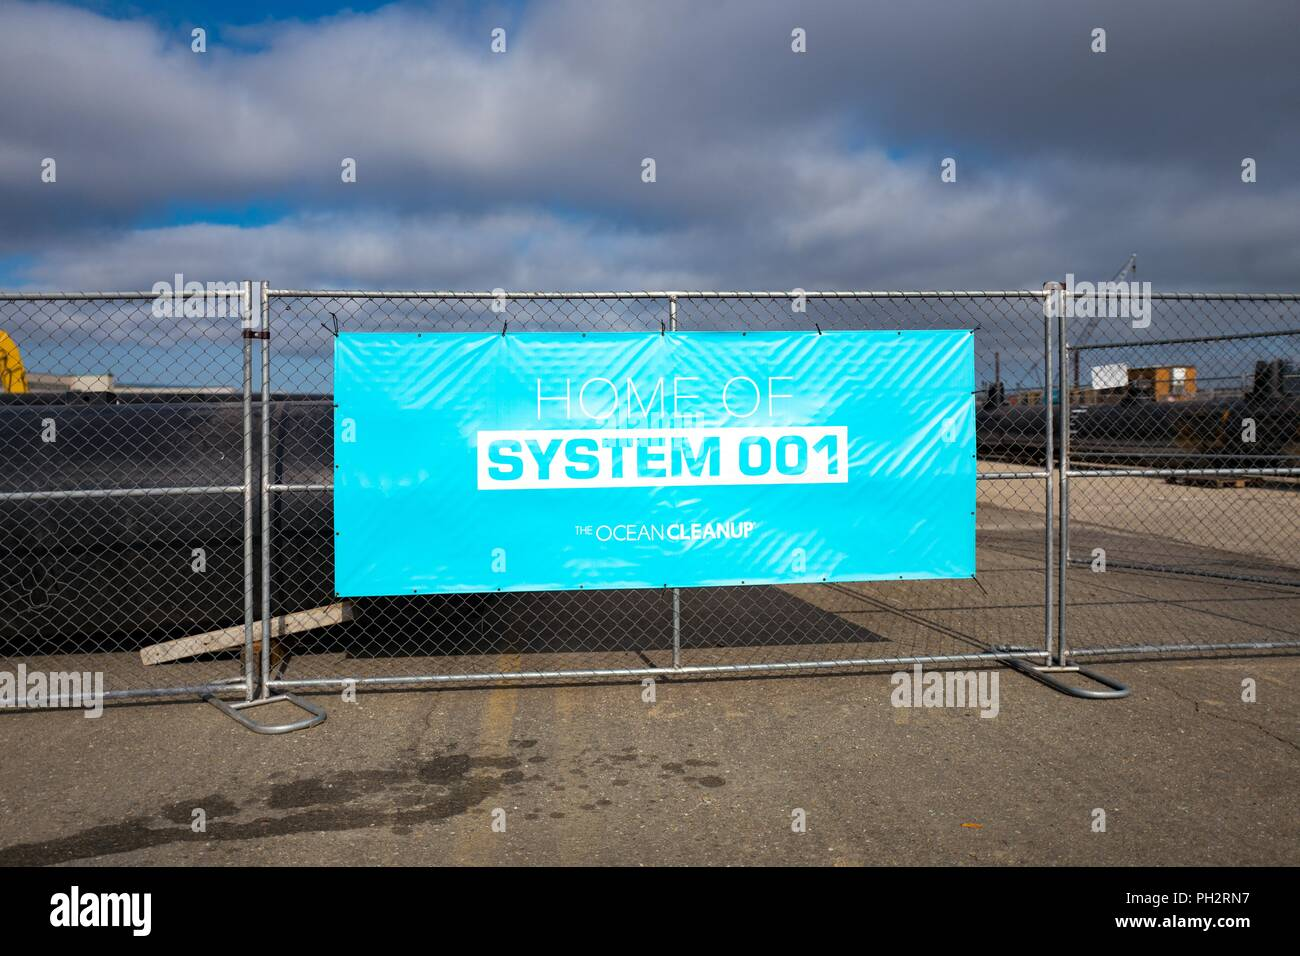 Sign on construction site at the assembly site of Ocean Cleanup's System 001, a technology designed to clean up the Great Pacific Garbage Patch, on Alameda Island, Alameda, California, August 13, 2018. () - Stock Image